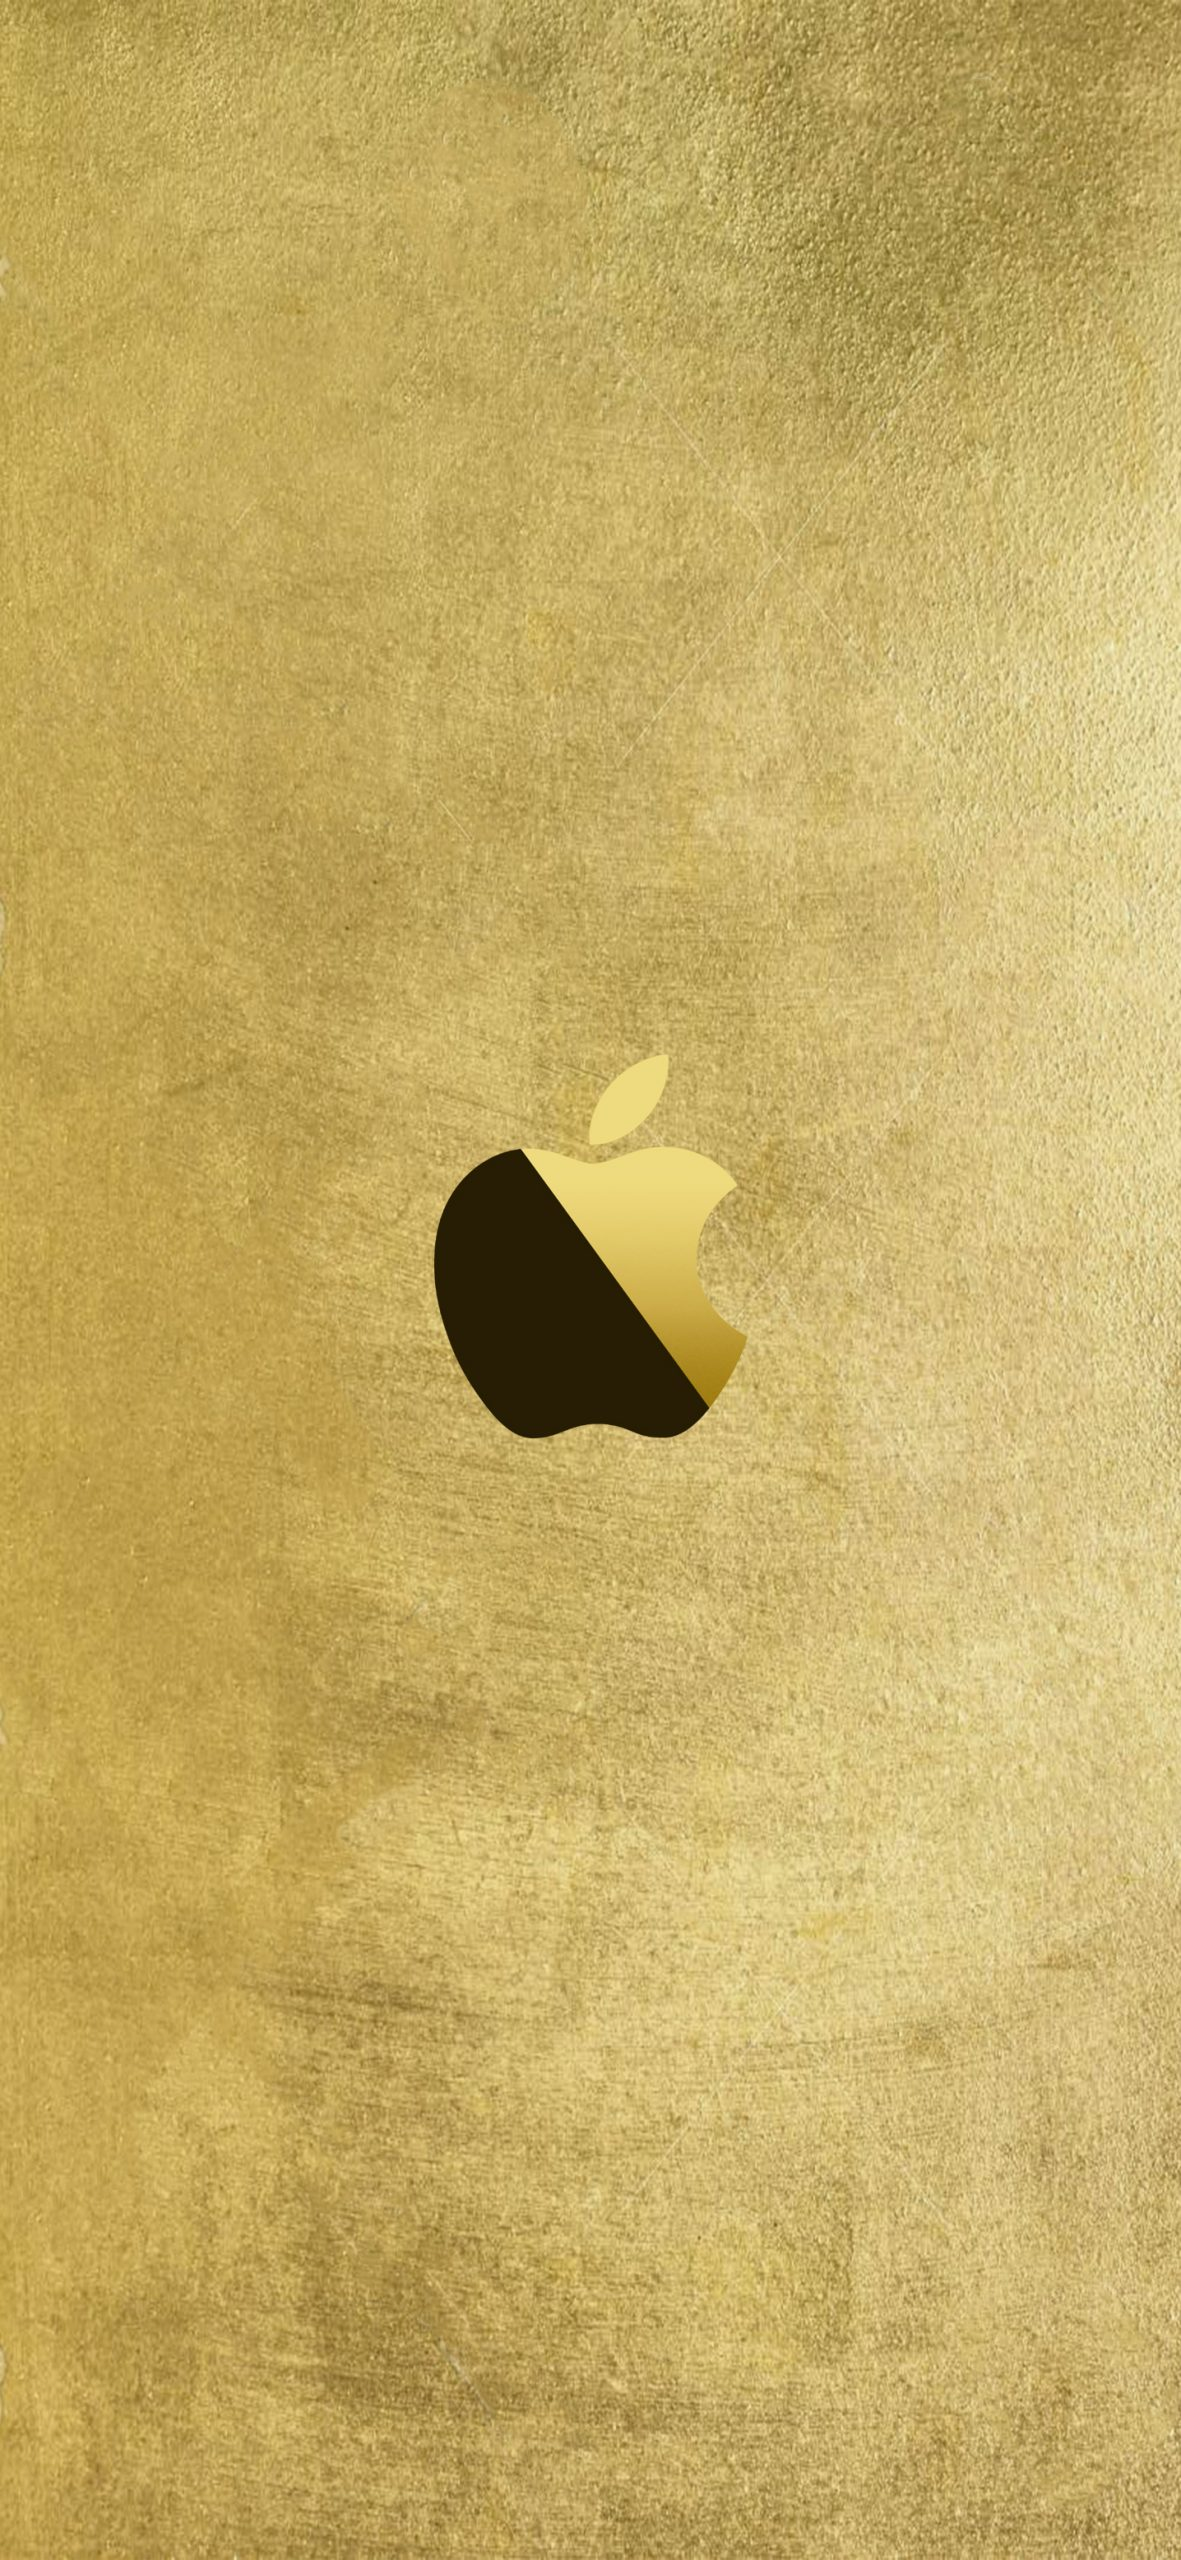 Wwdc 2020 Modded Wallpaper Gold Apple Wallpapers Central